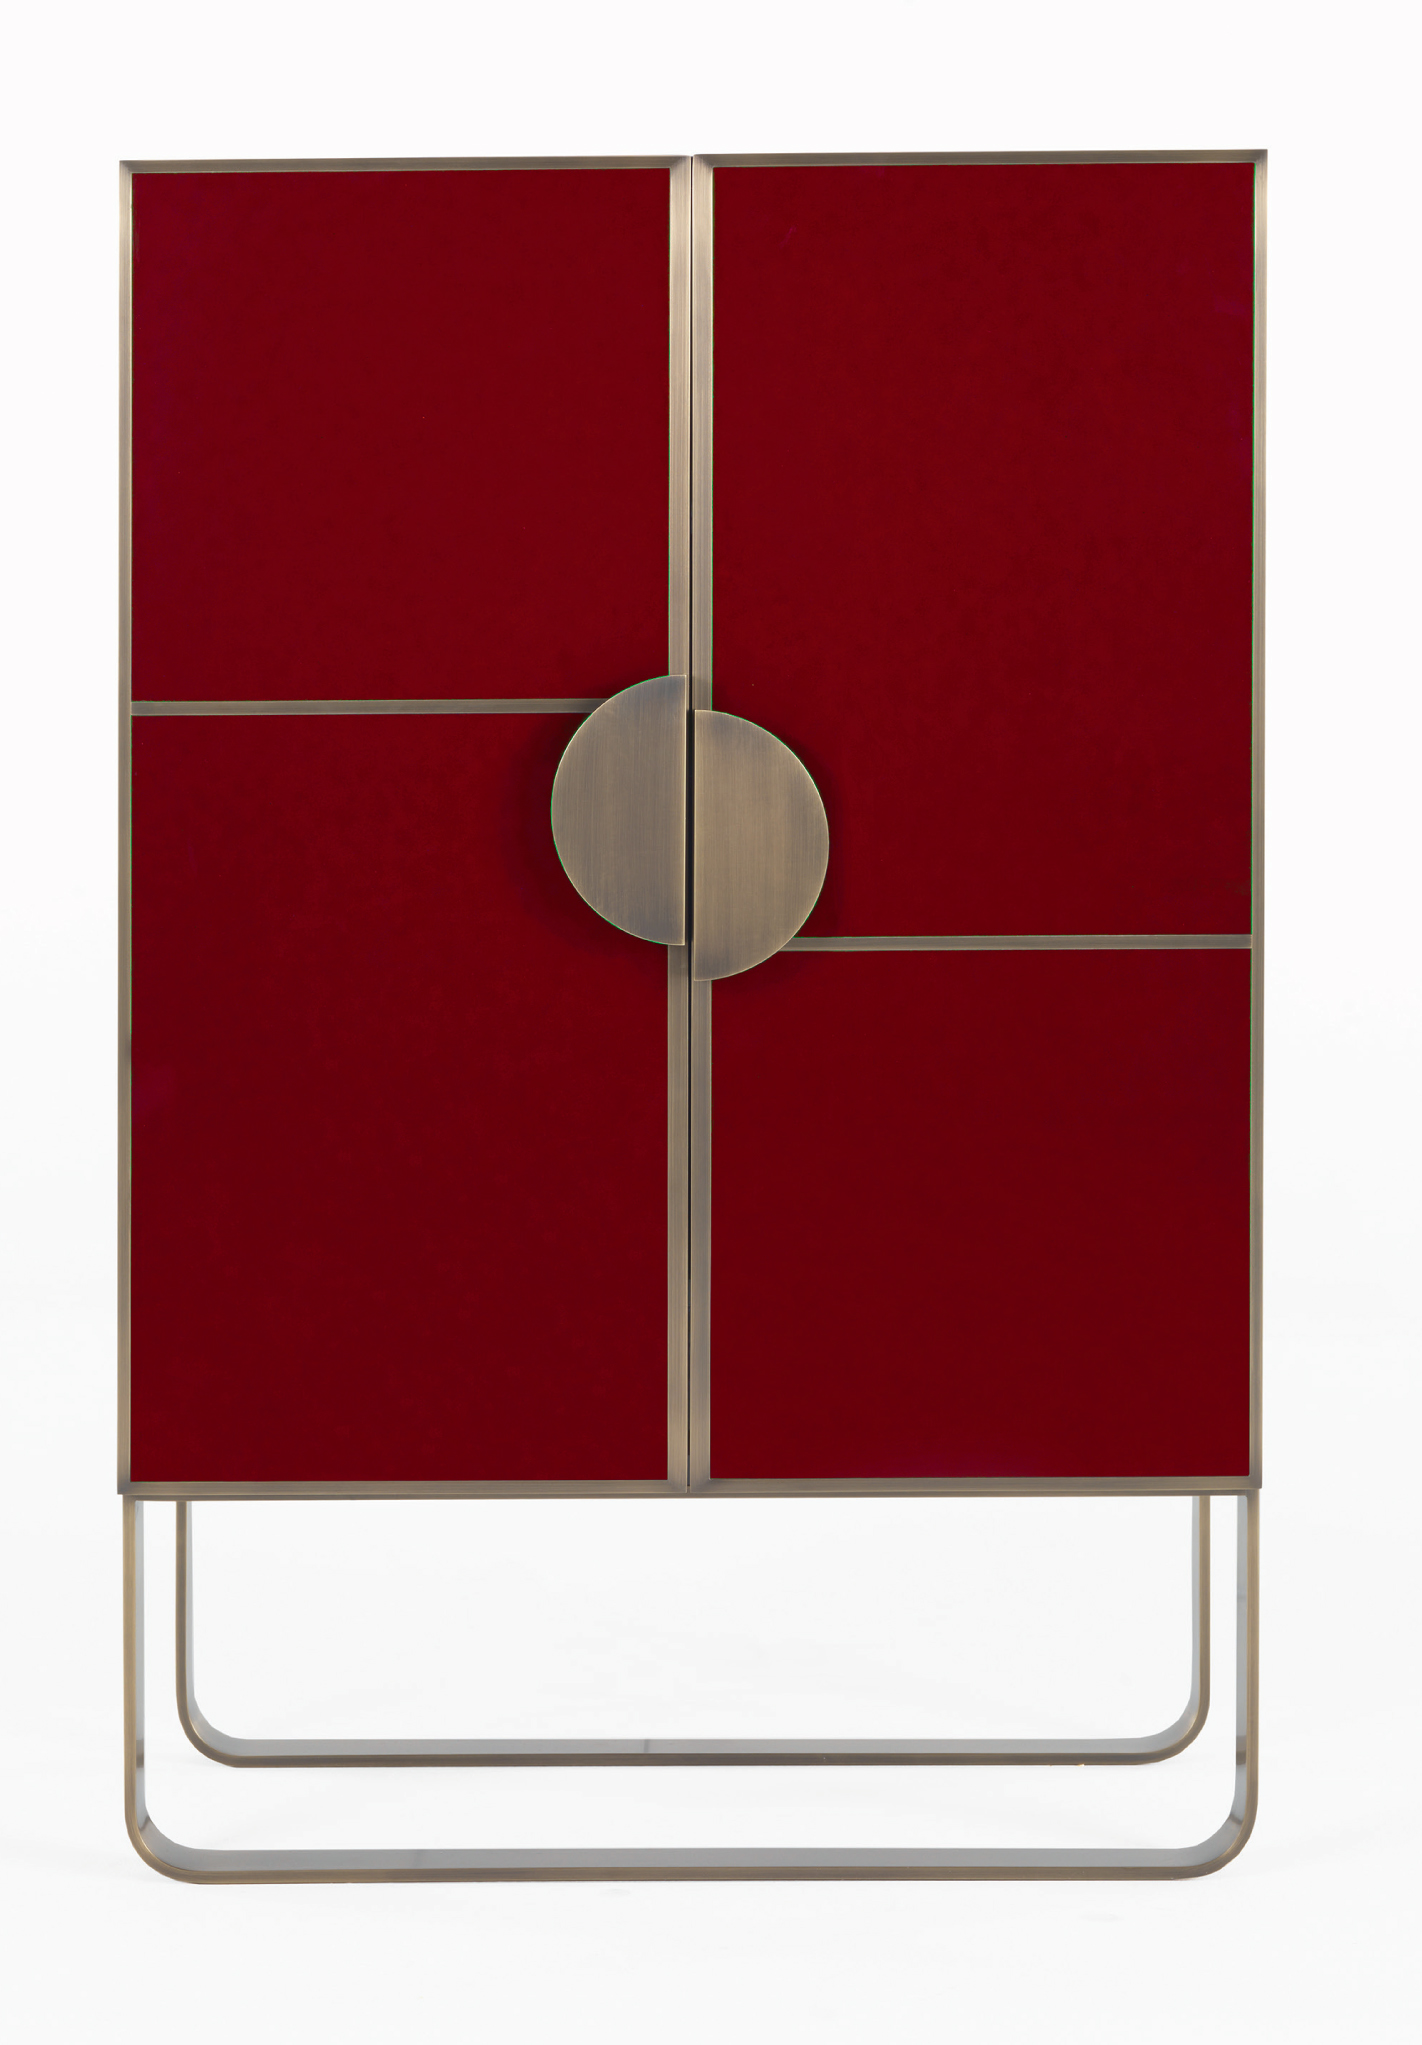 Rendez-Vous Red Bar Cabinet, Zanaboni for Borbonese